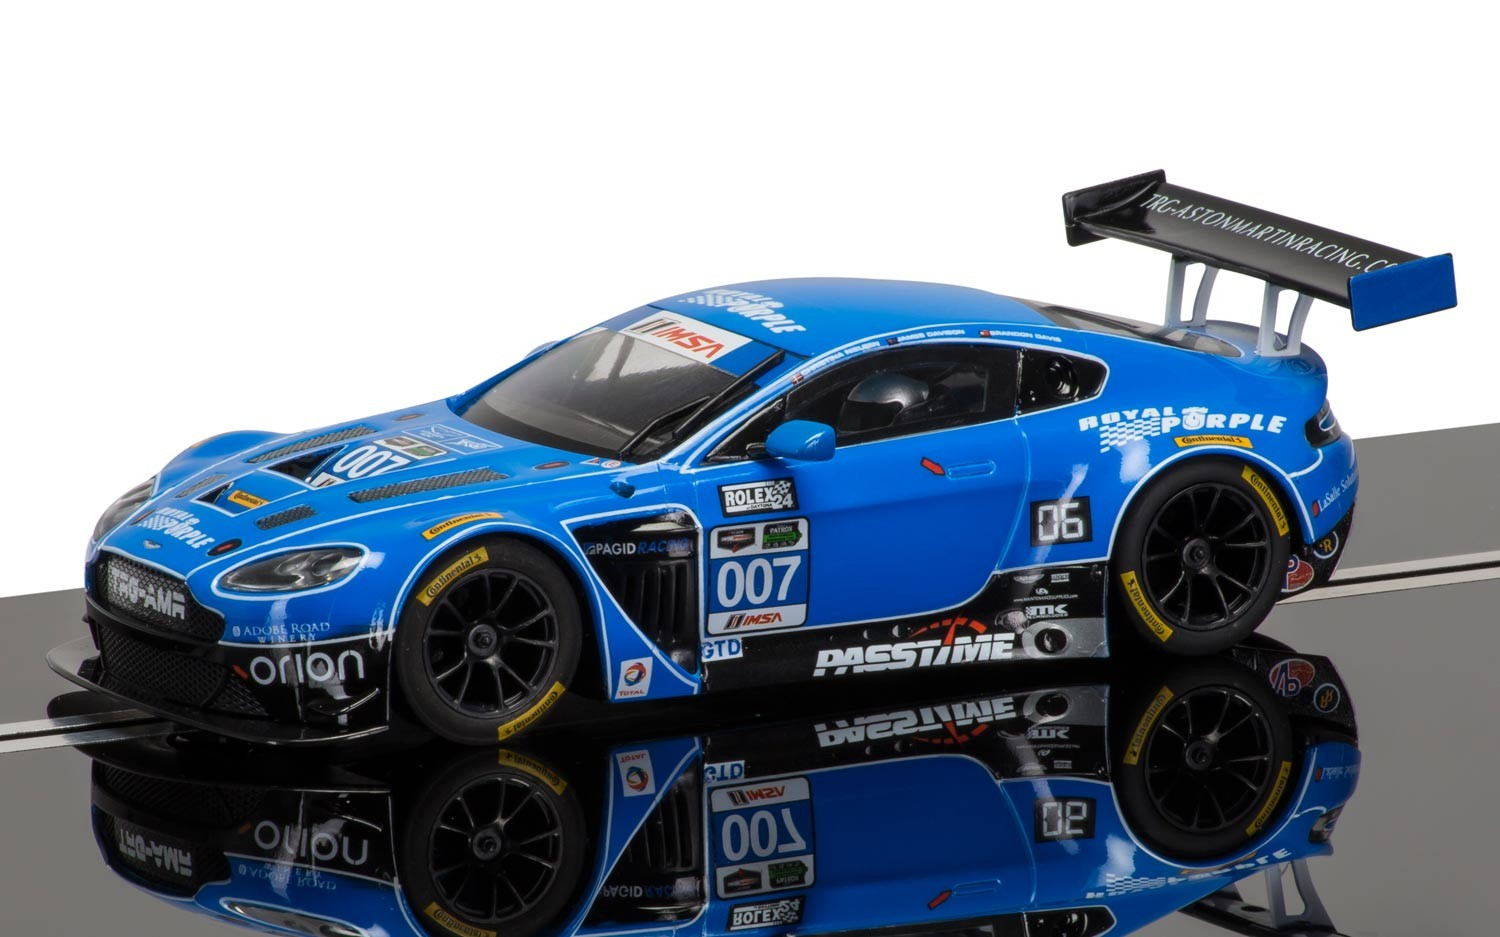 Aston Martin Vantage GT3 #007 1/32 Slot Car